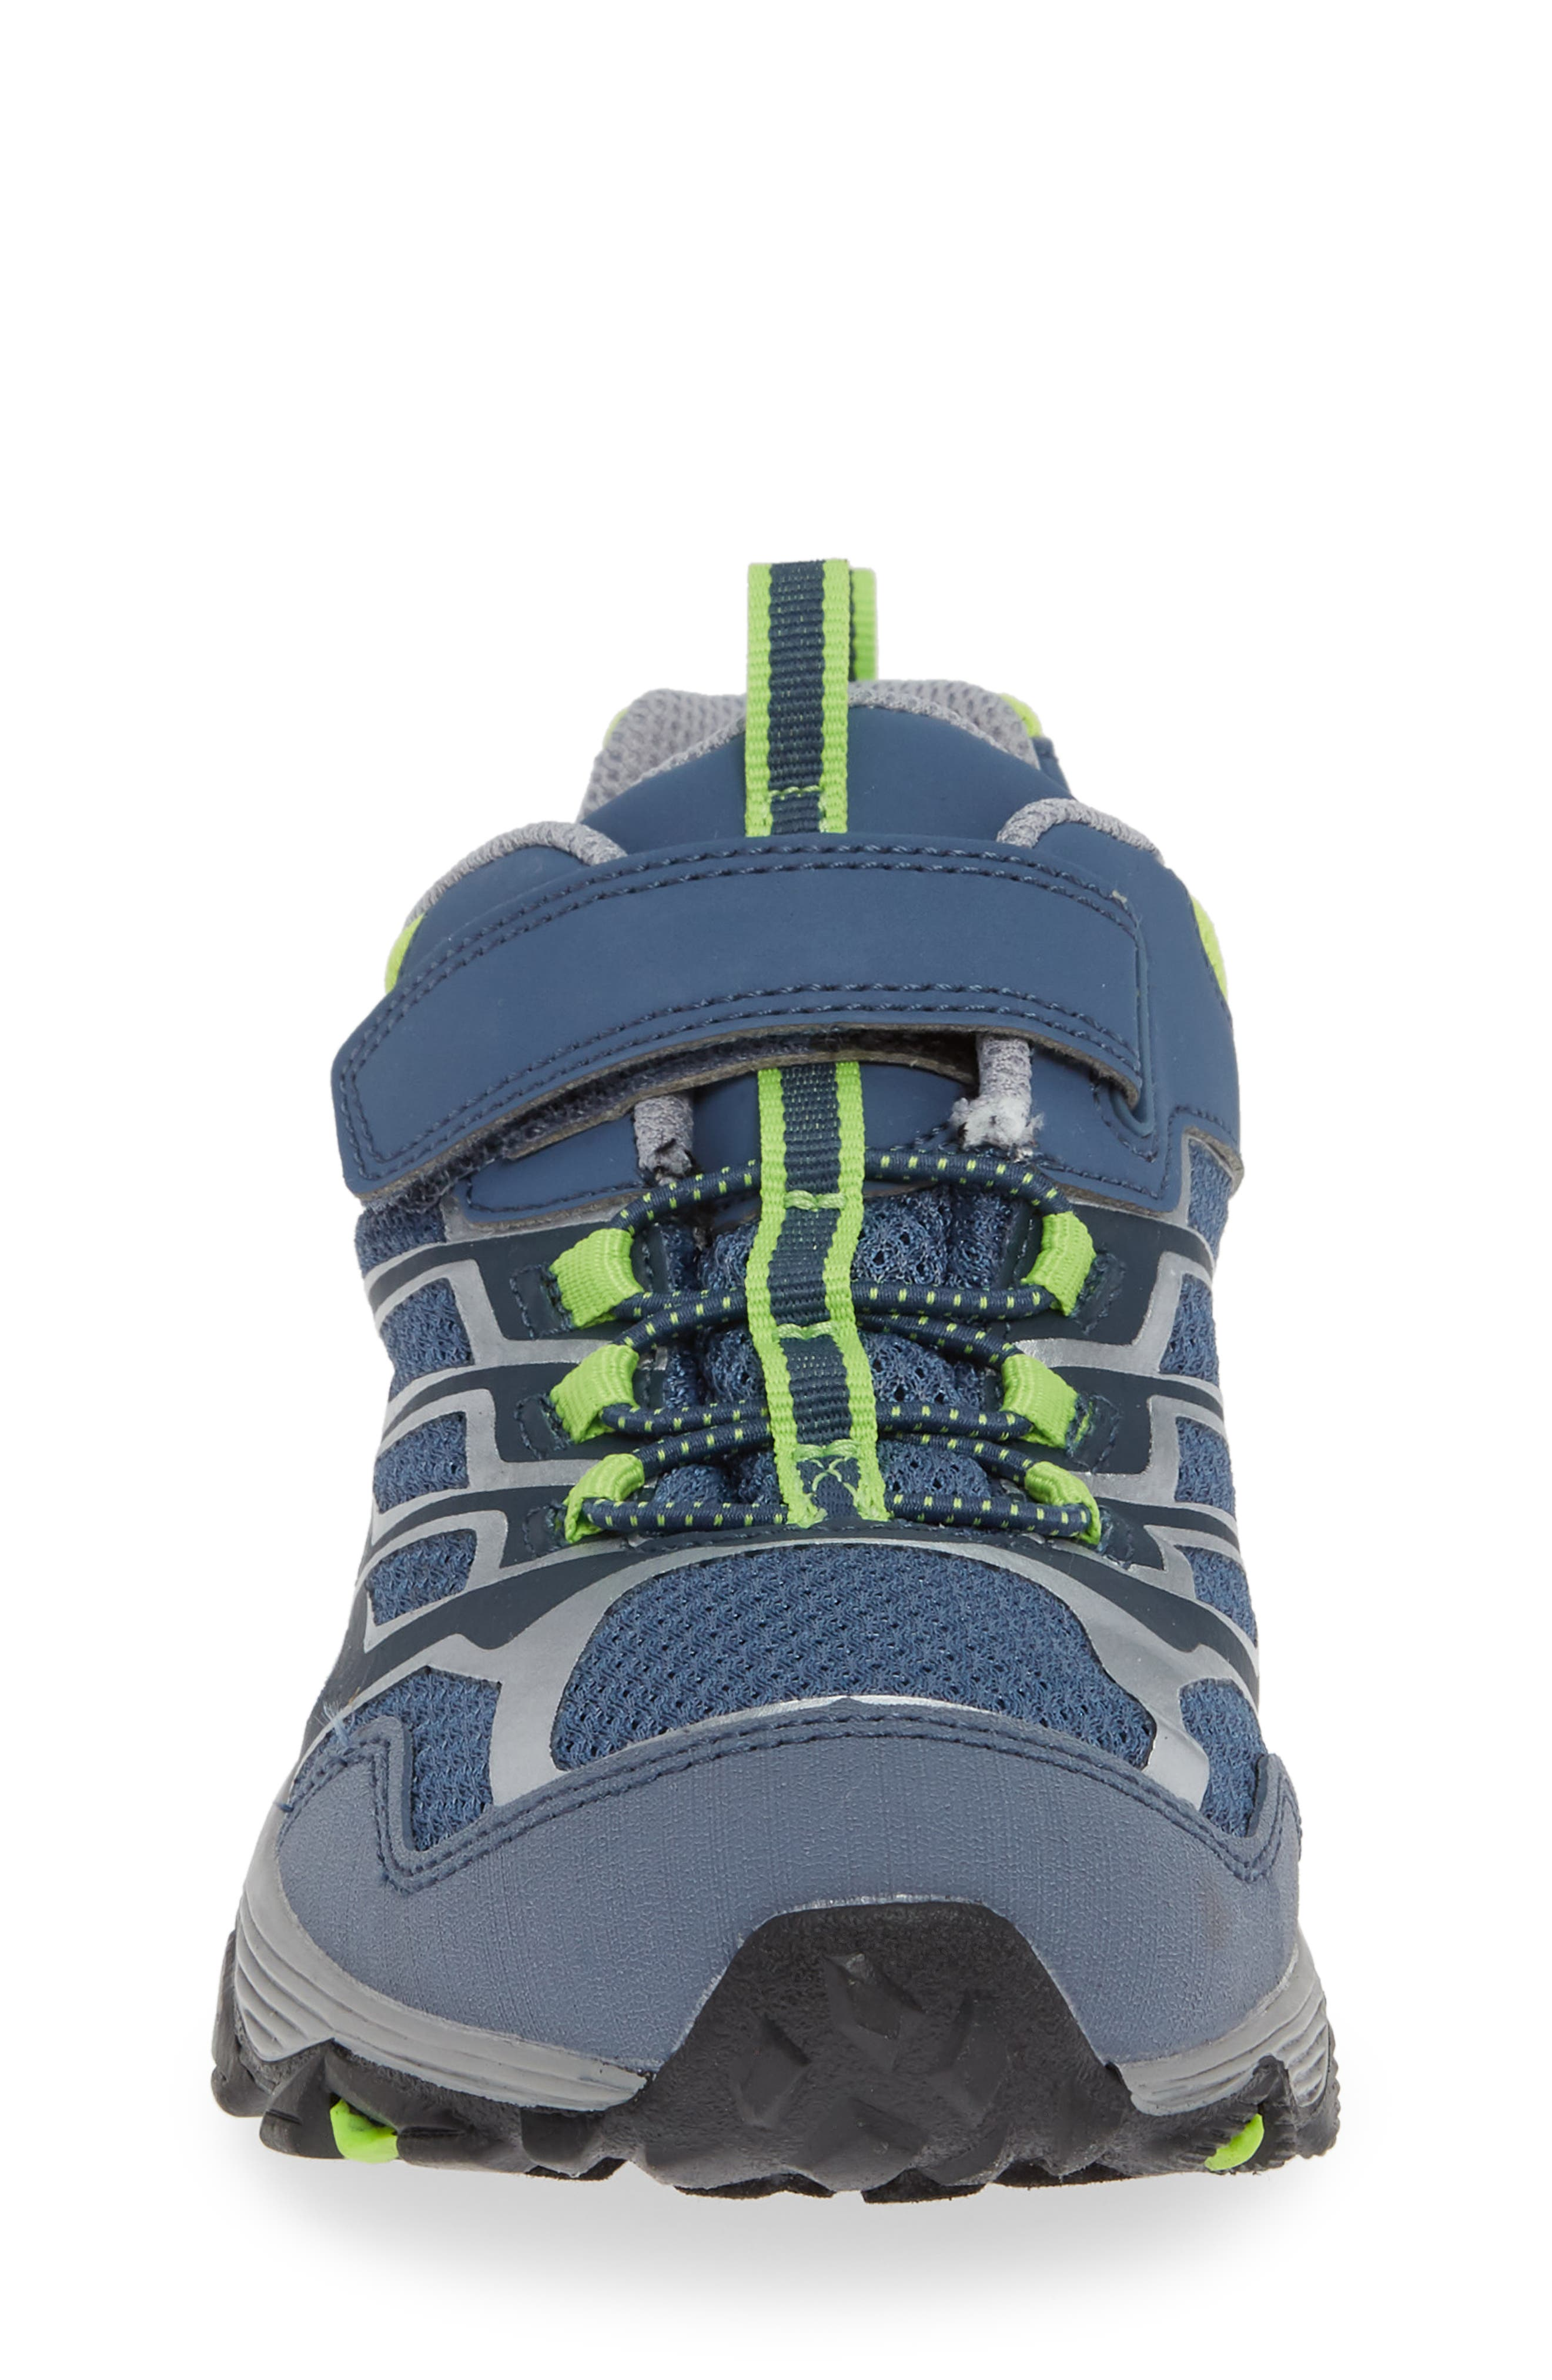 Moab FST Polar Low Waterproof Sneaker,                             Alternate thumbnail 4, color,                             GREY/ GREEN